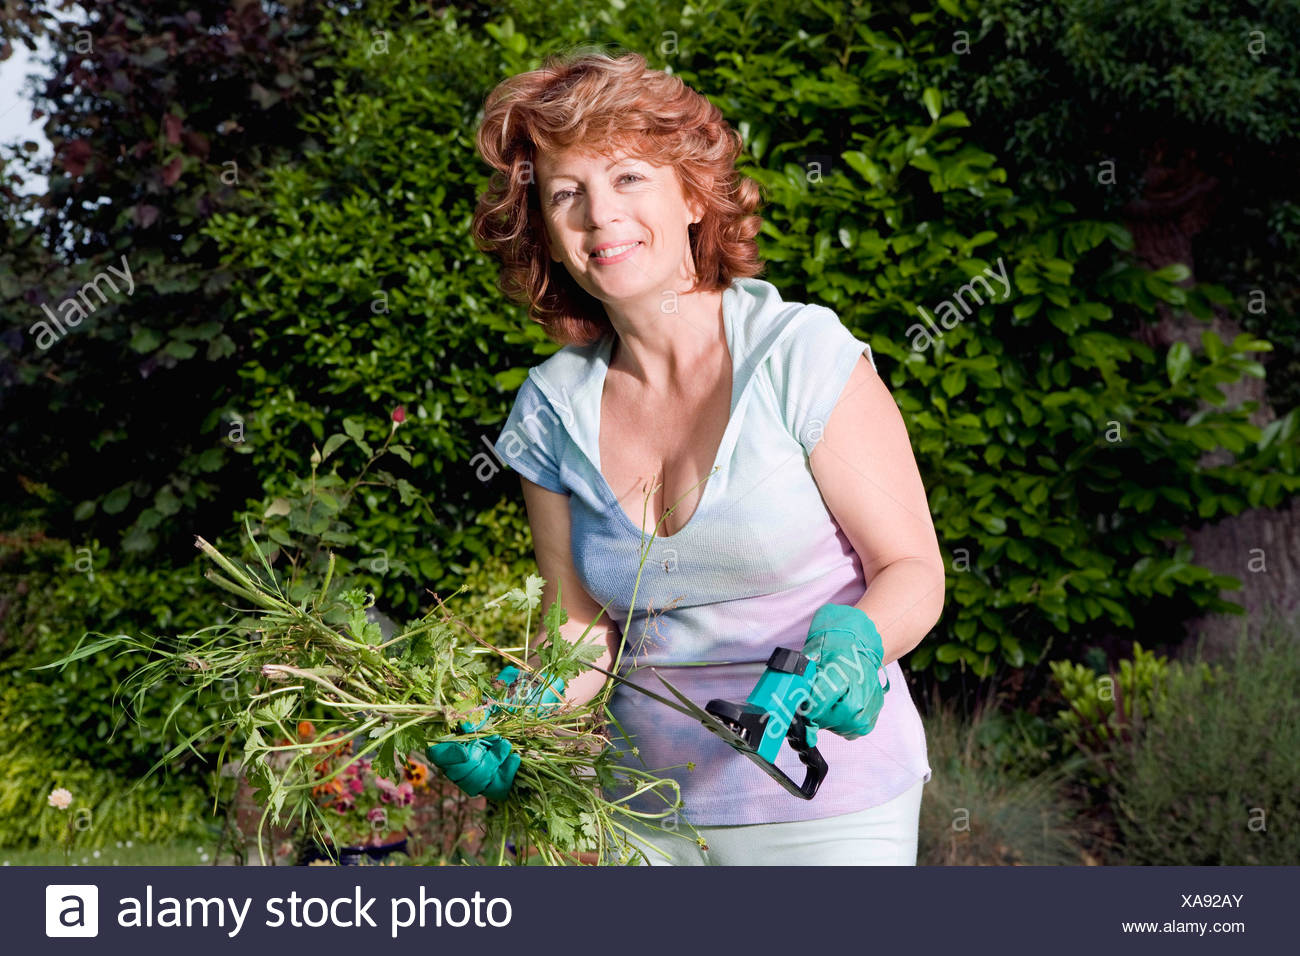 Mature Woman holding plants in garden Photo Stock